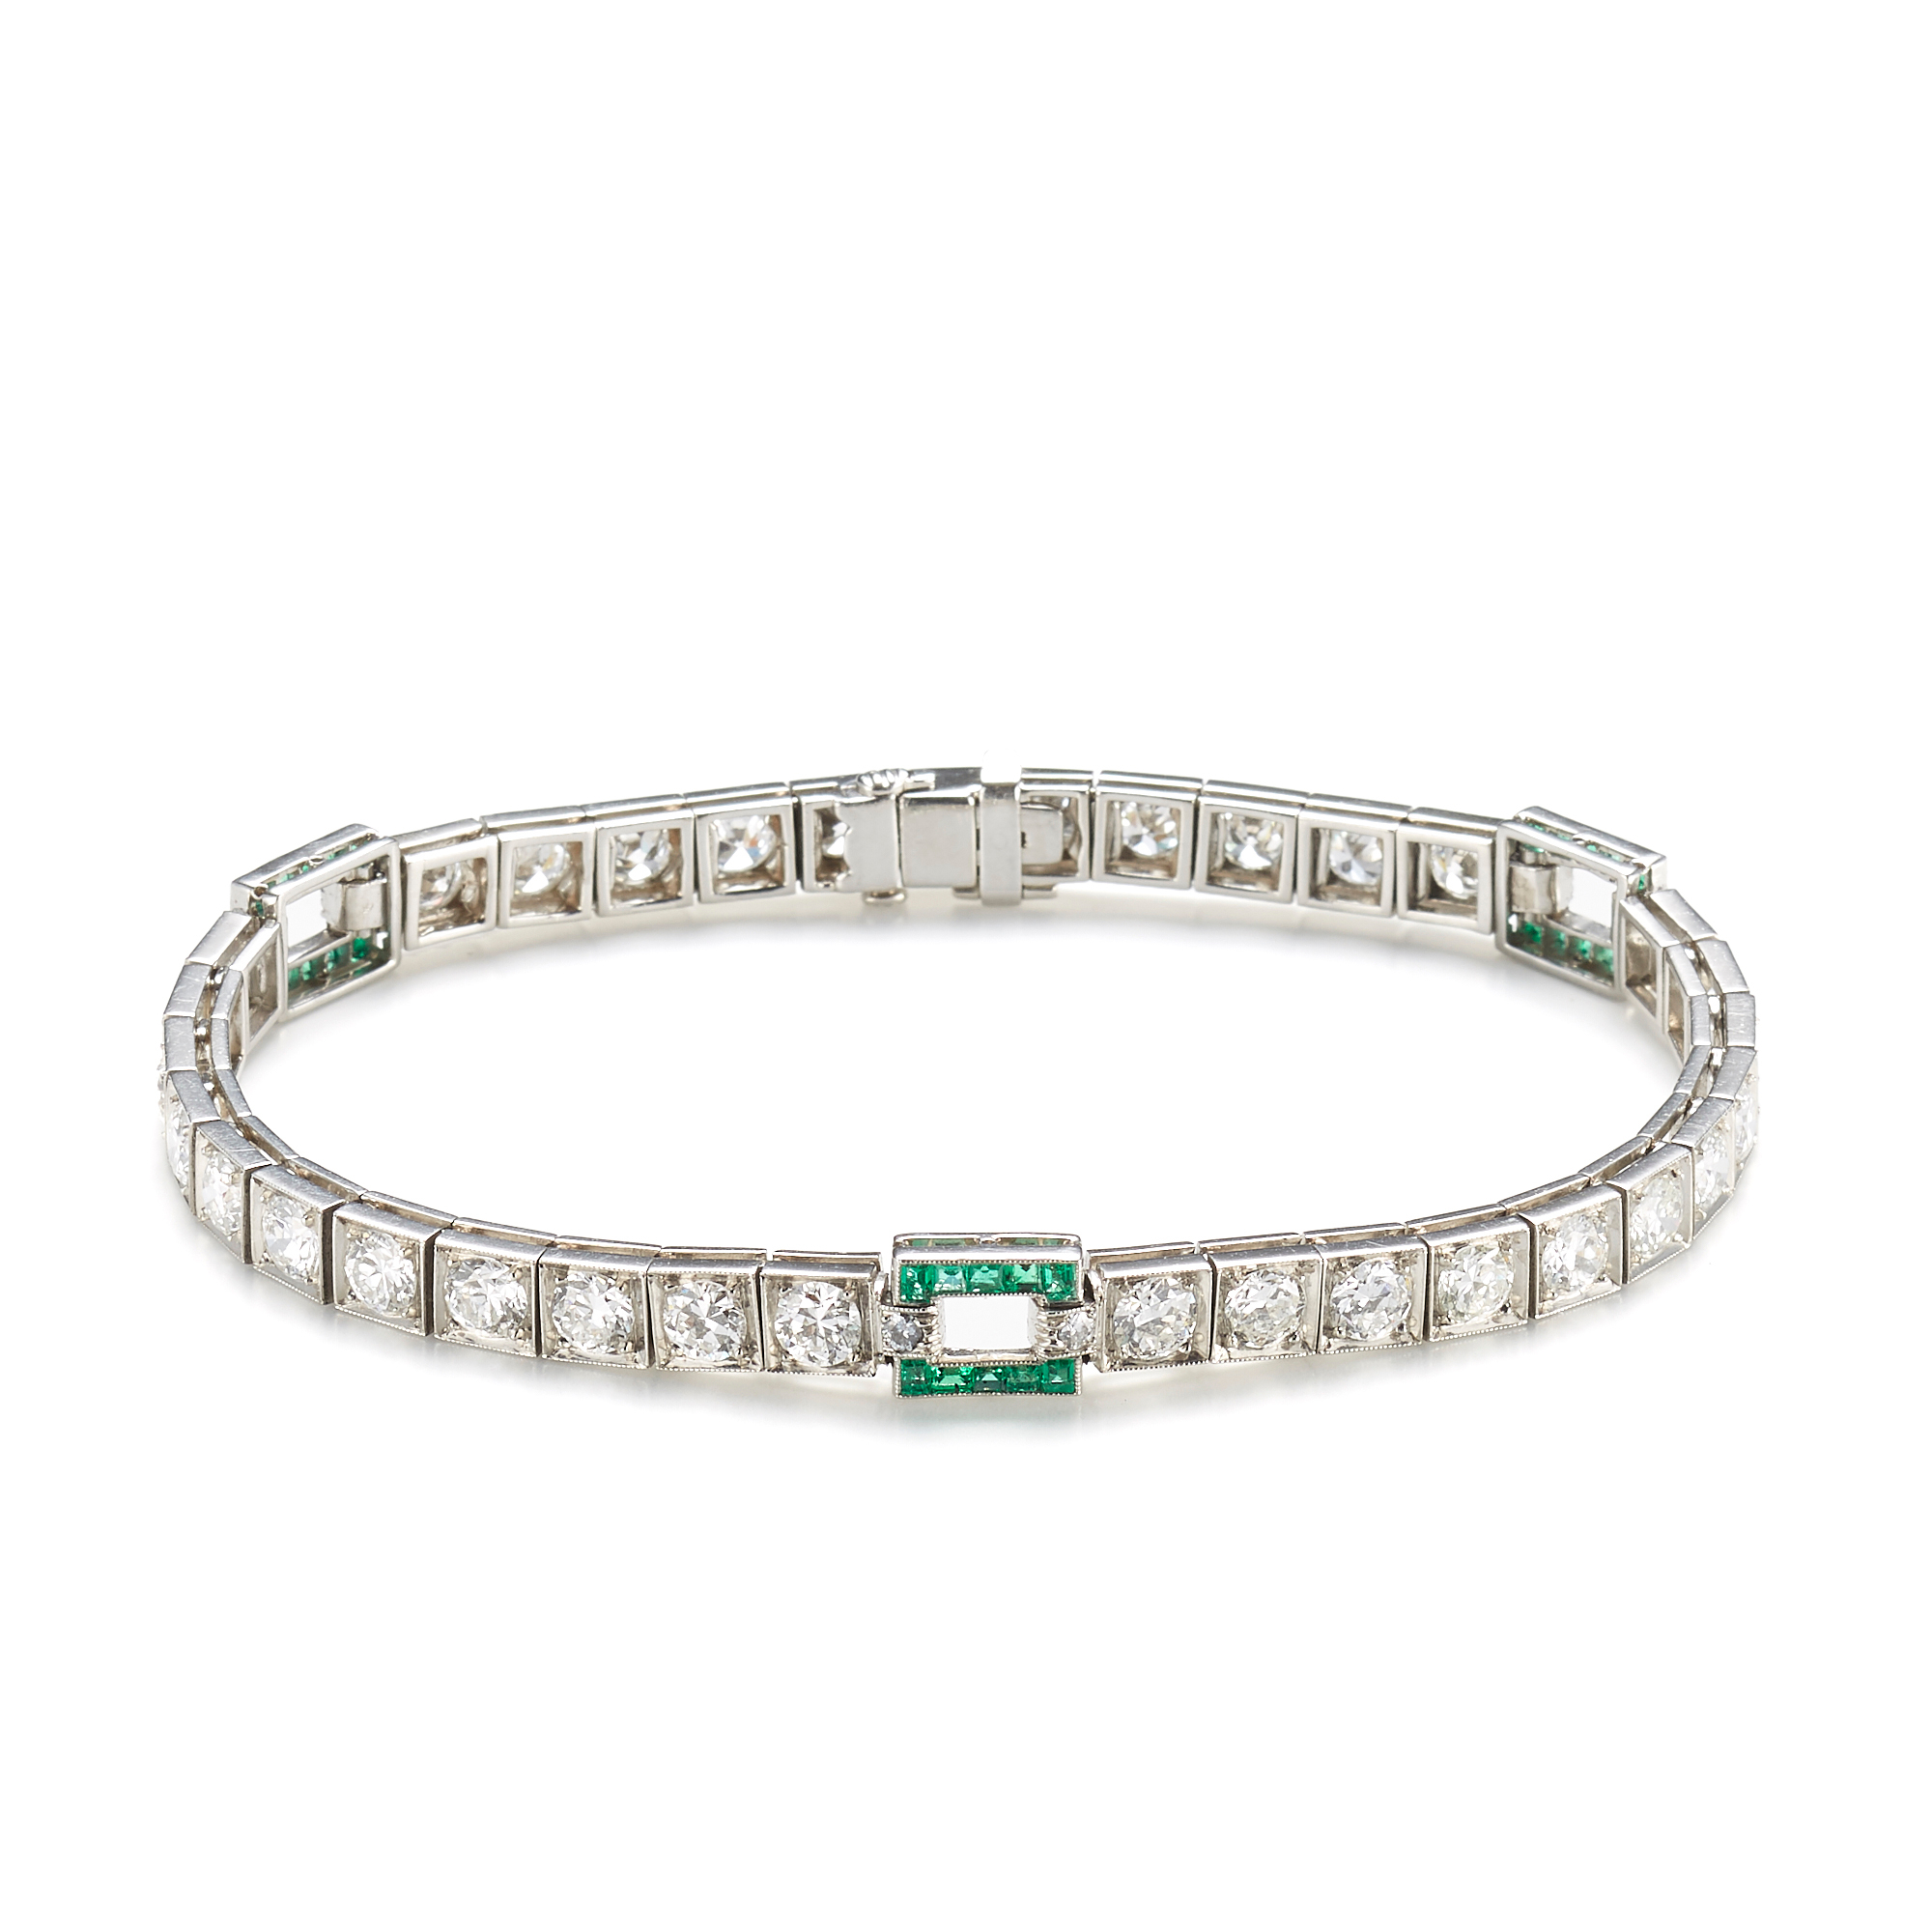 Diamond & Emerald Links Art Deco Bracelet